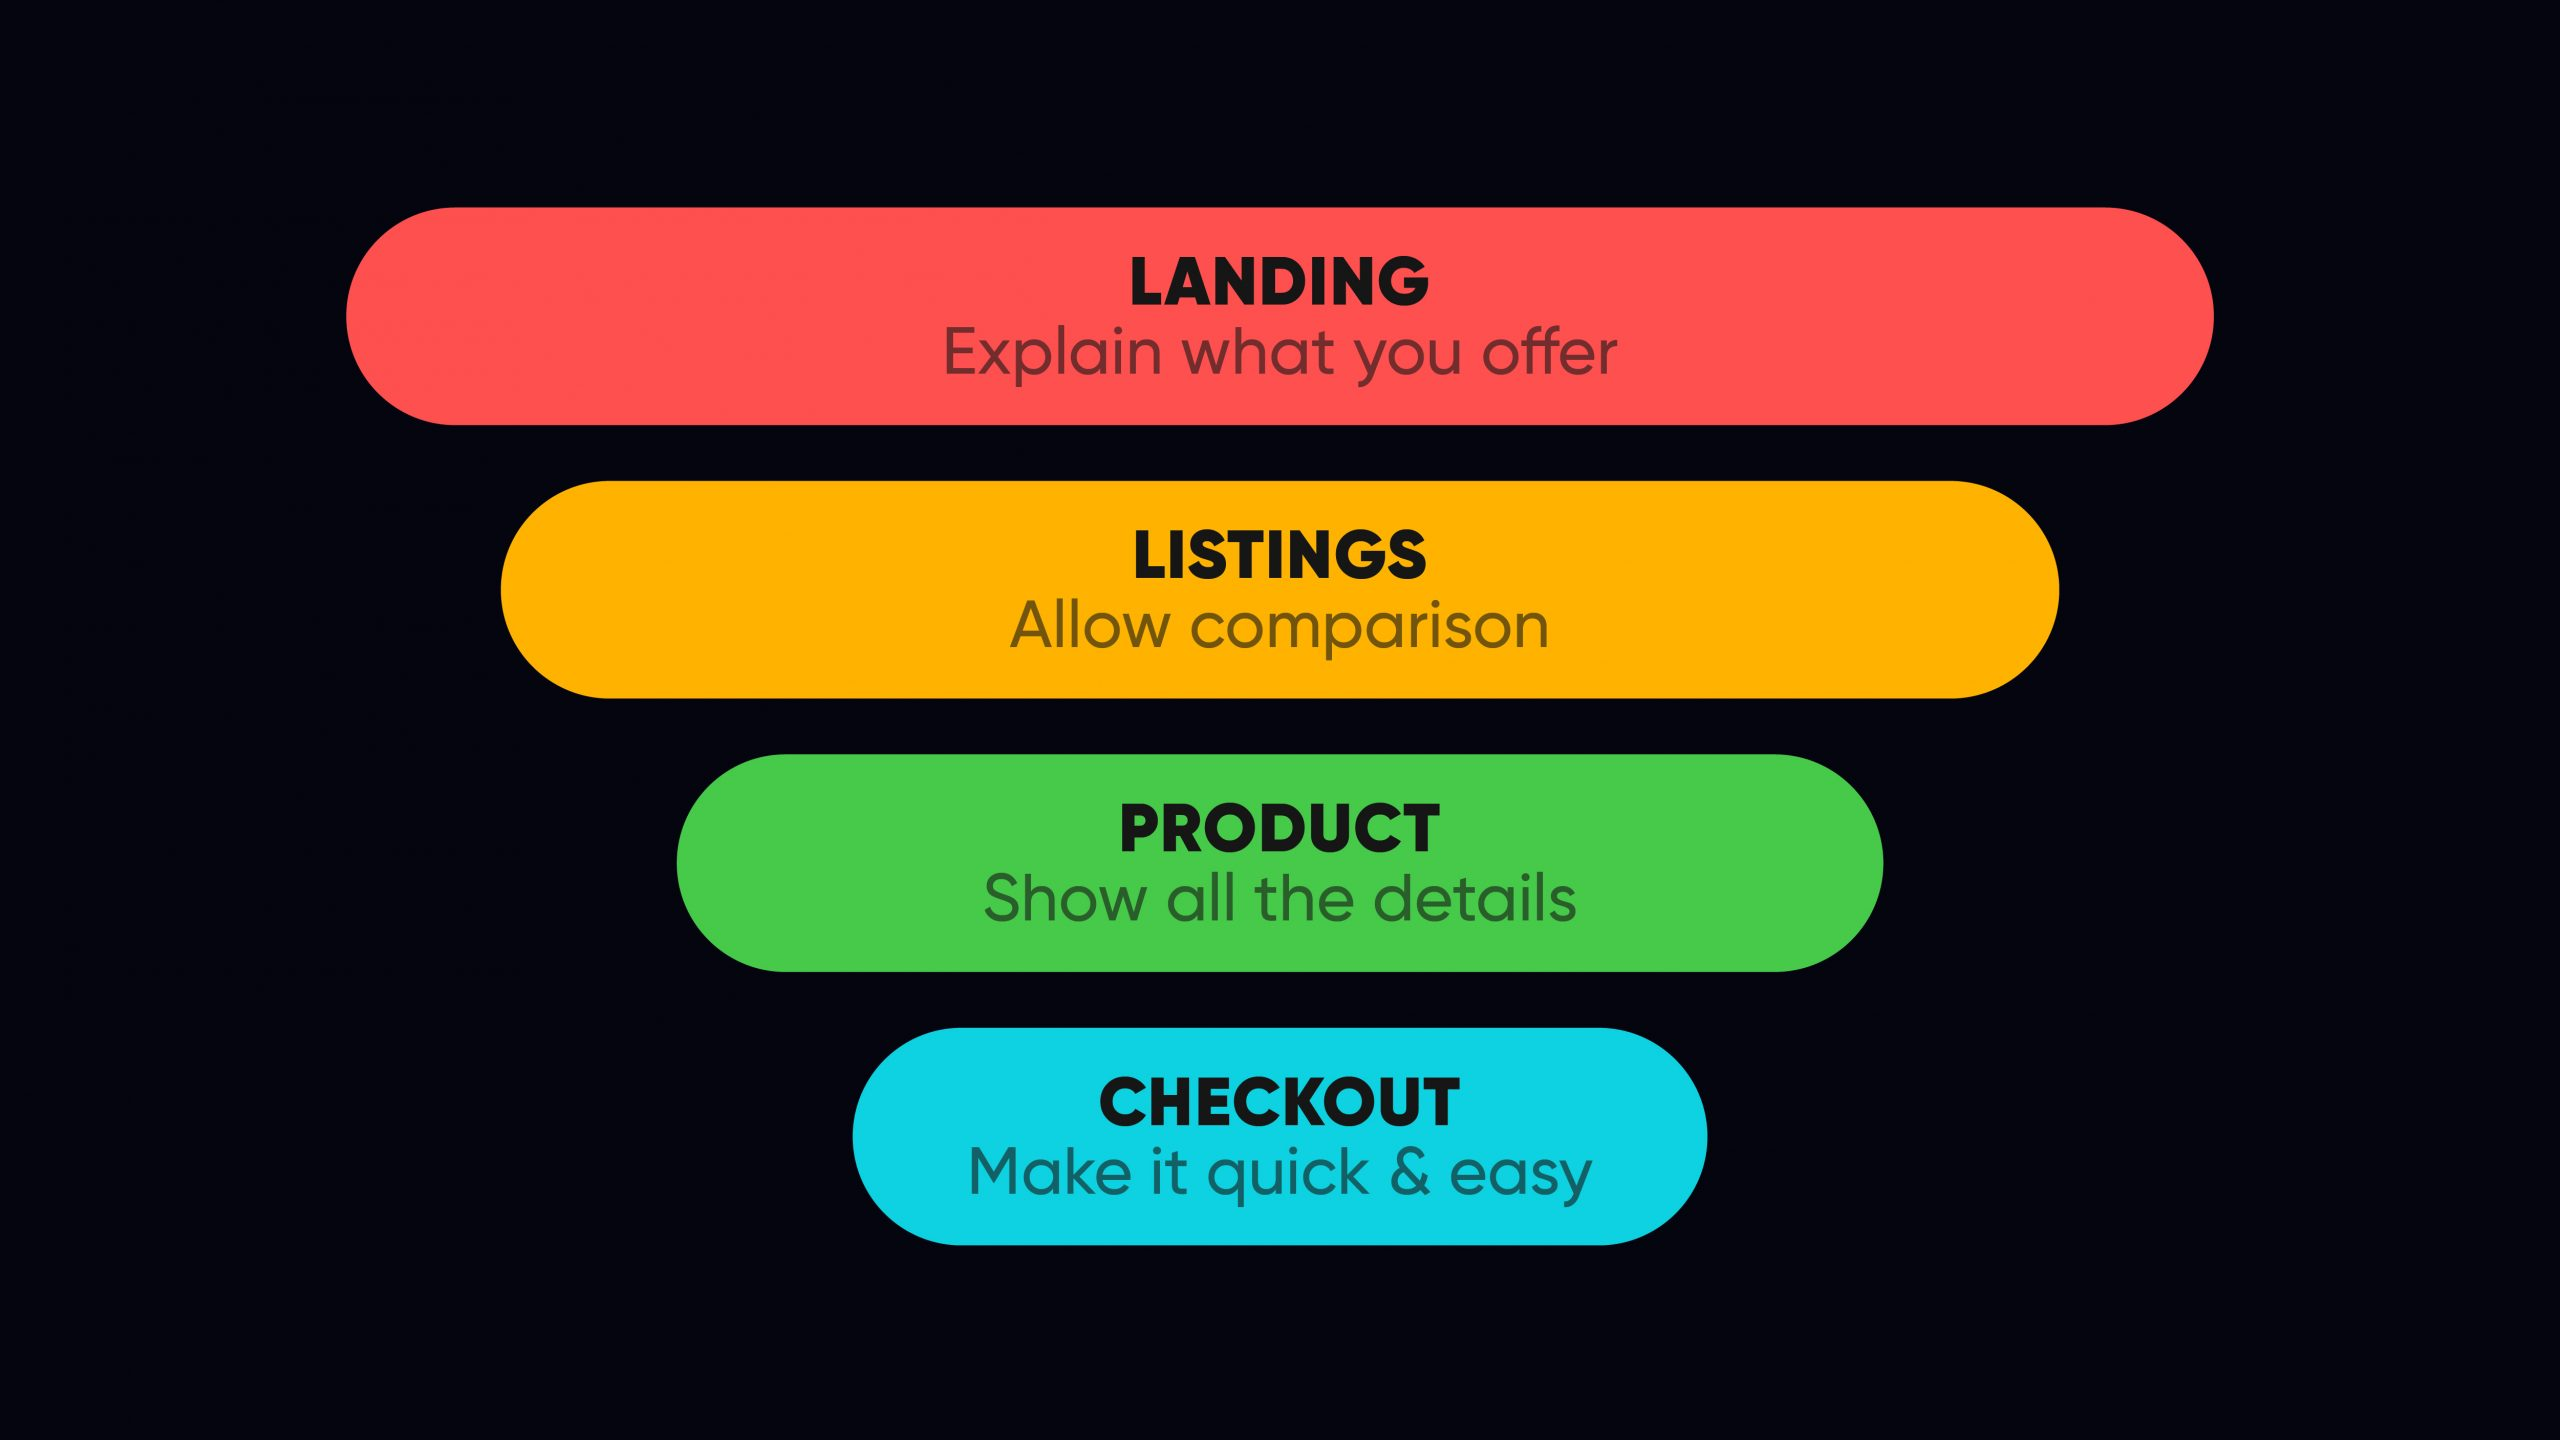 User journey mapping across the conversion funnel